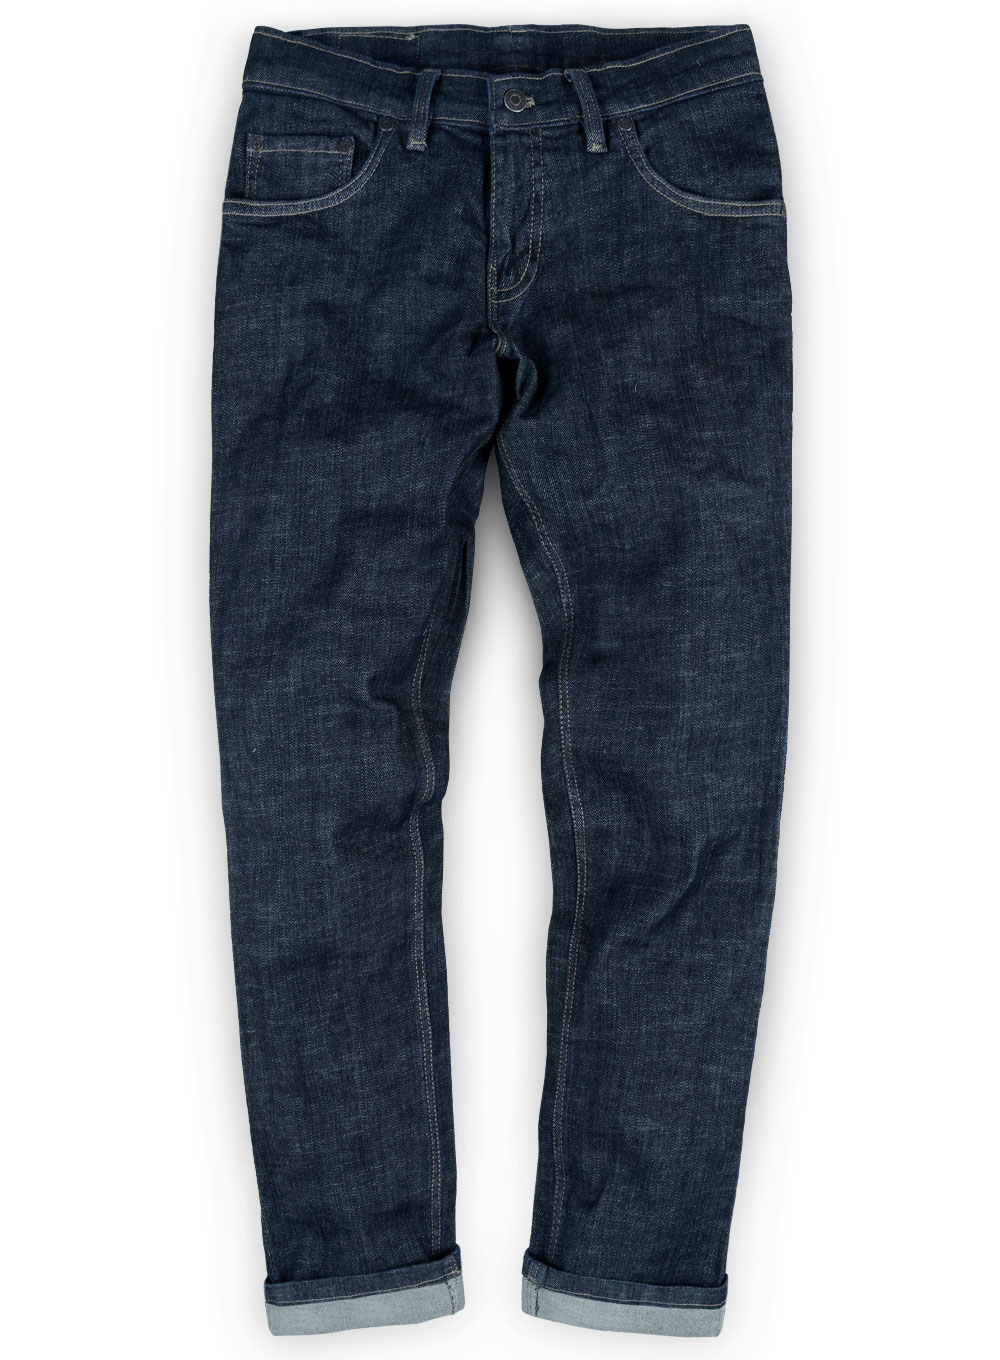 Dagger Stretch Jeans - Hard Wash